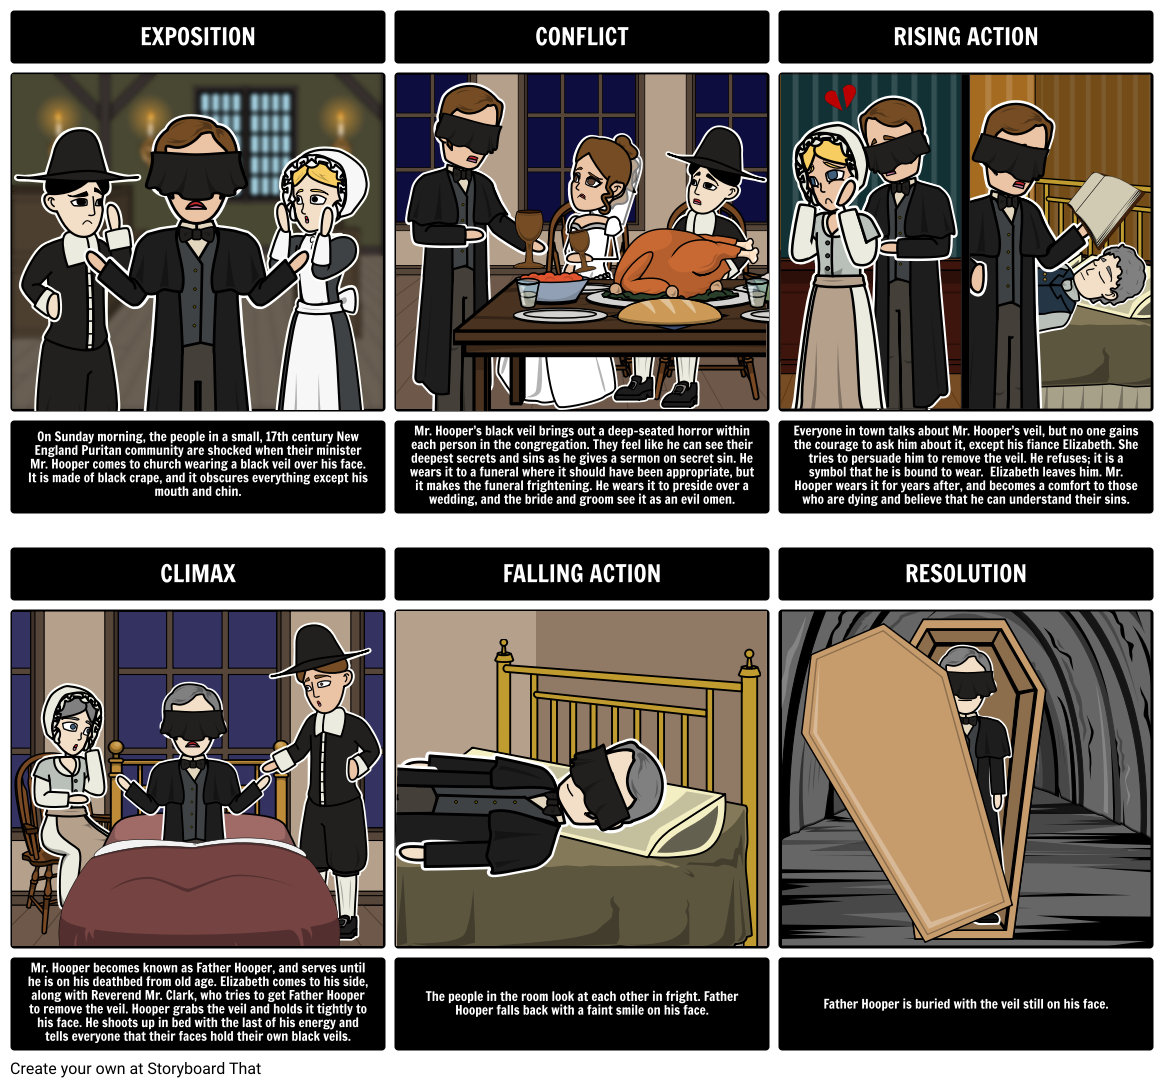 scarlet letter vs ministers black veil A comparison of hawthorne's 'the scarlet letter' and 'the minister's black veil.